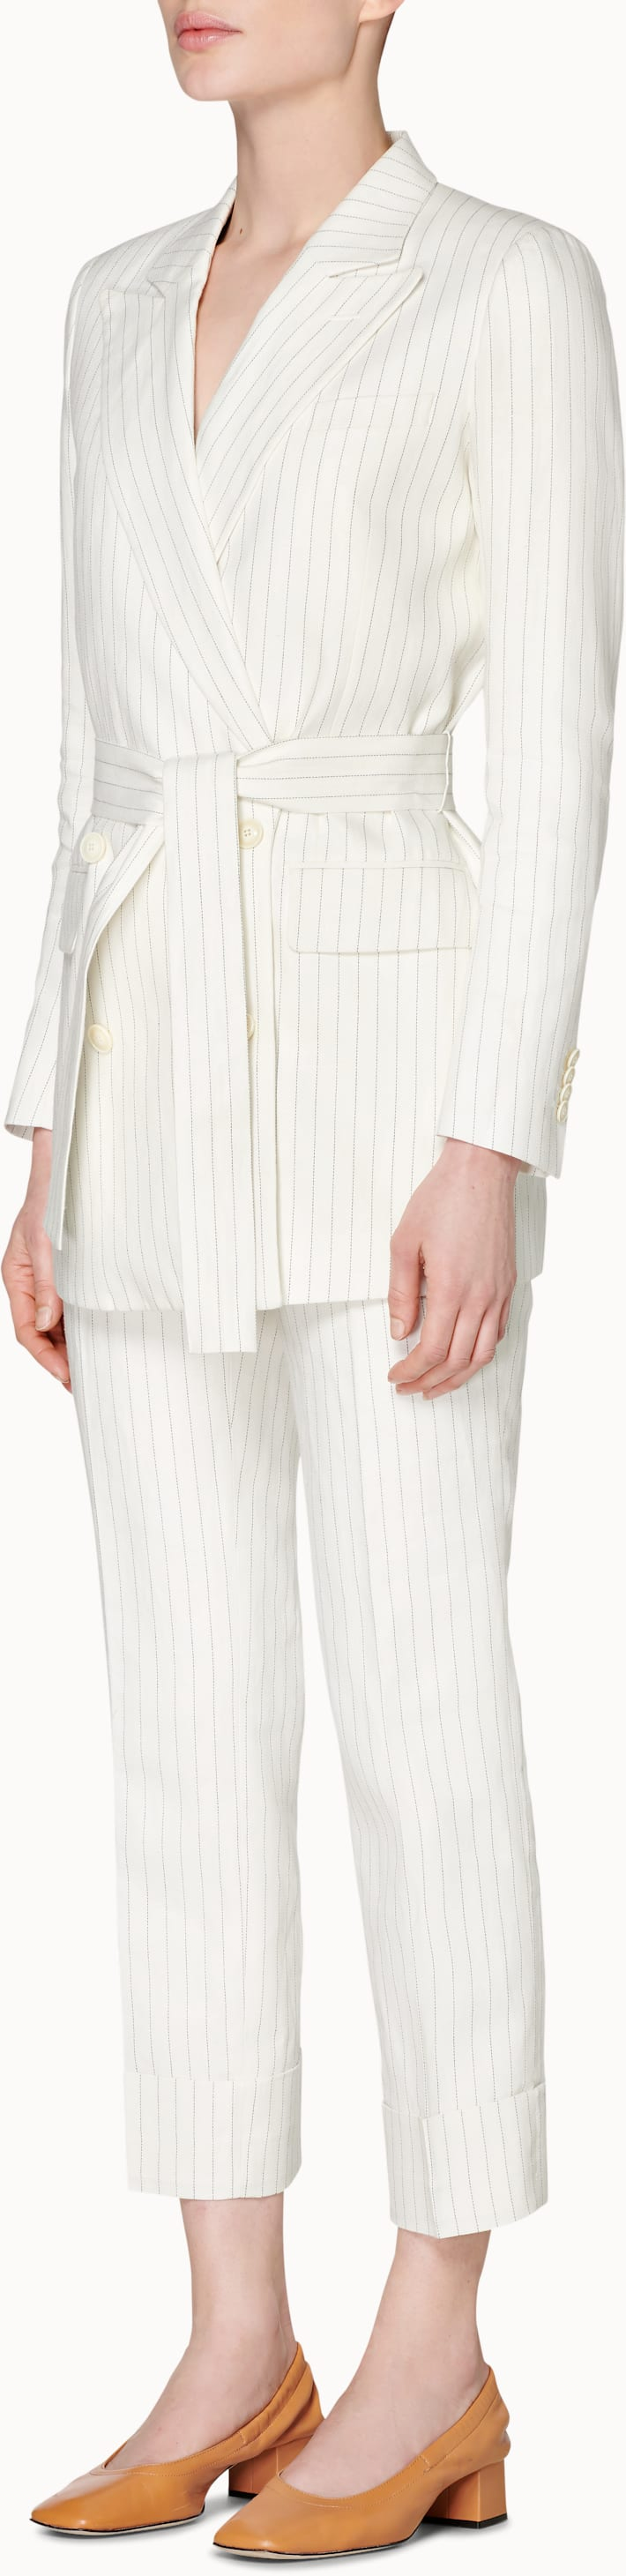 Tory Off White Striped Suit